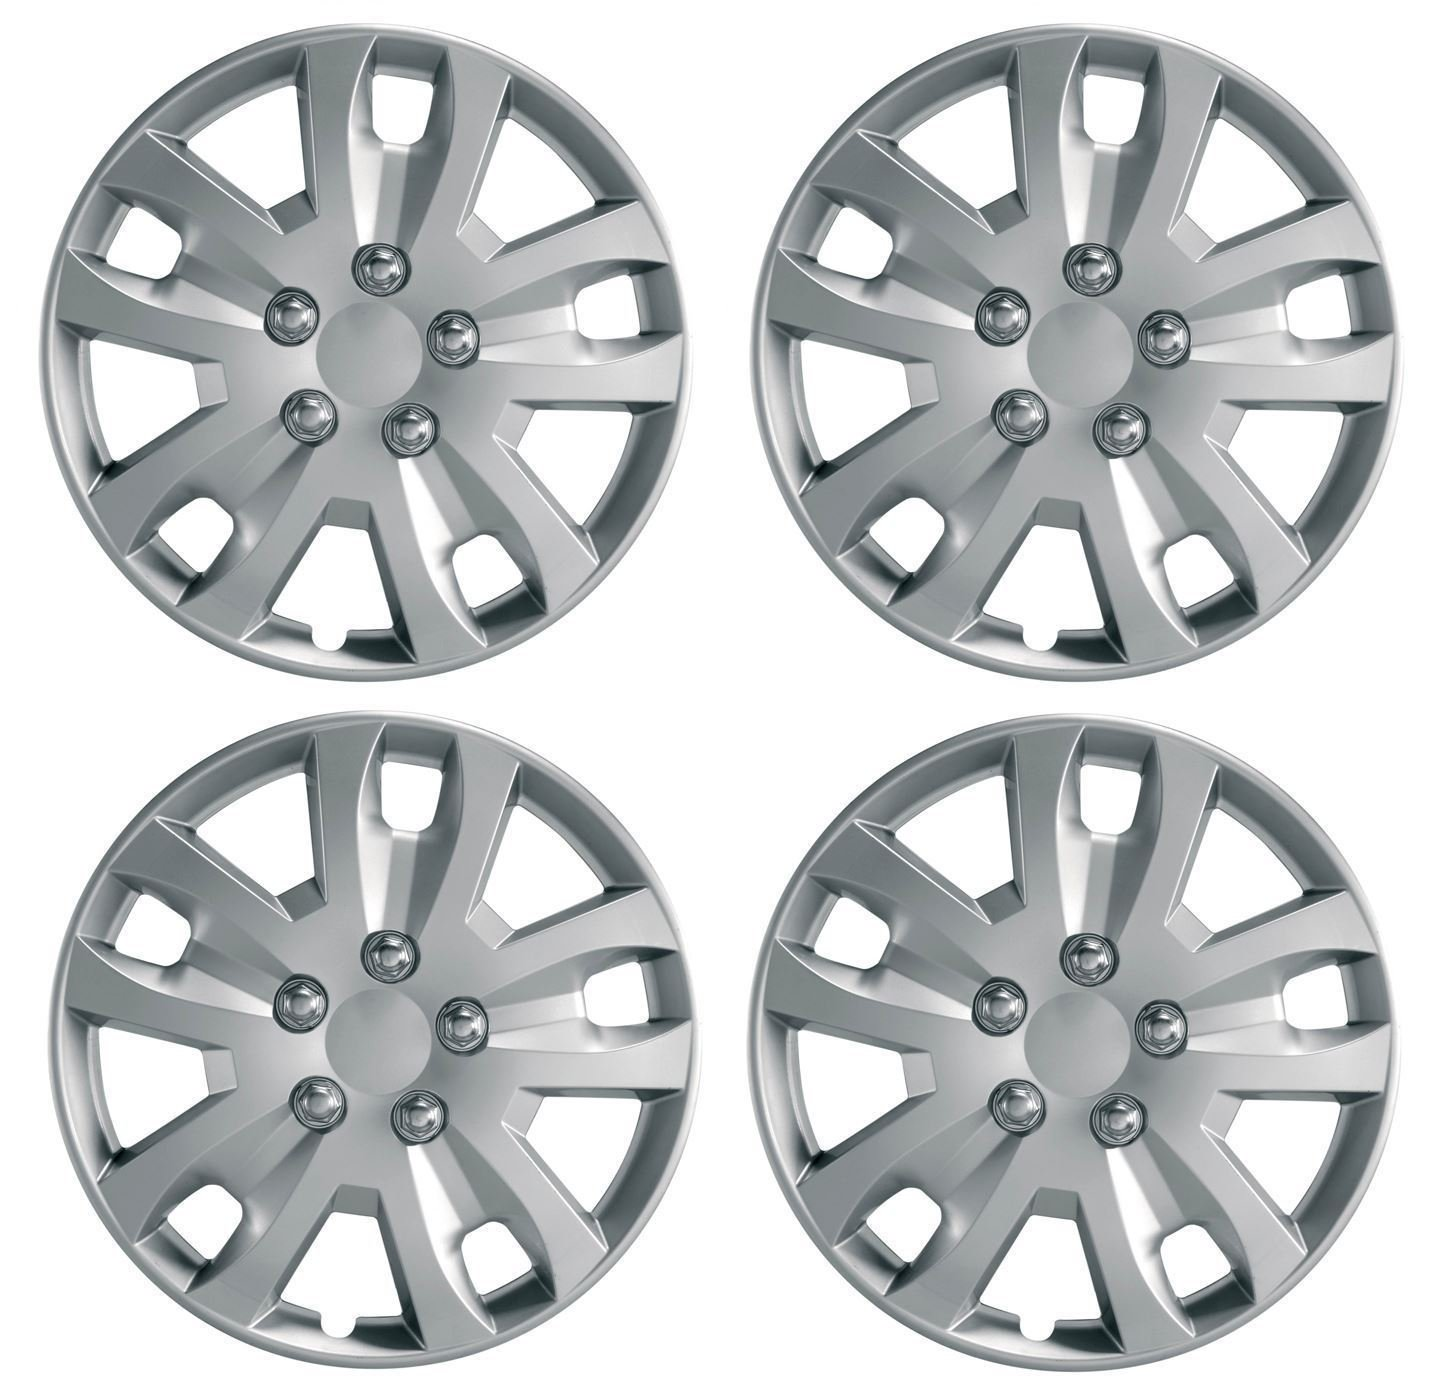 UKB4C Set of 4 Wheel Trims/Hub Caps 14' Covers fit Peugeot 106 107 206 207